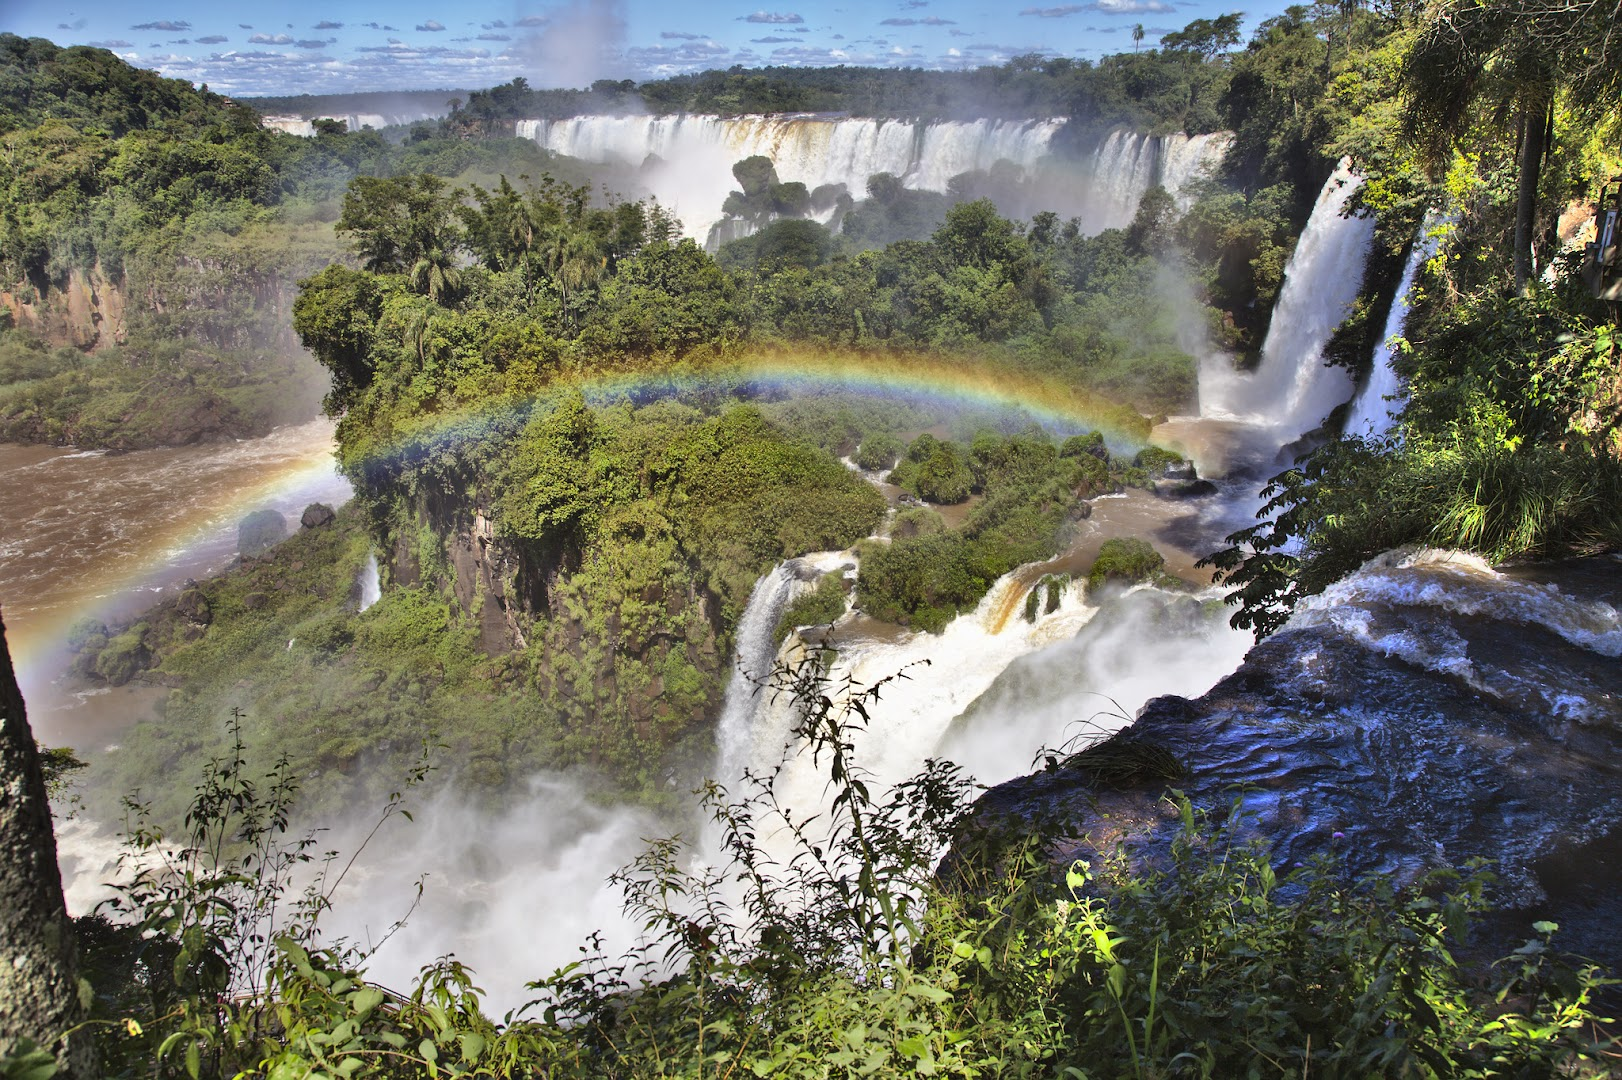 On Argentine side you can walk above or below the falls